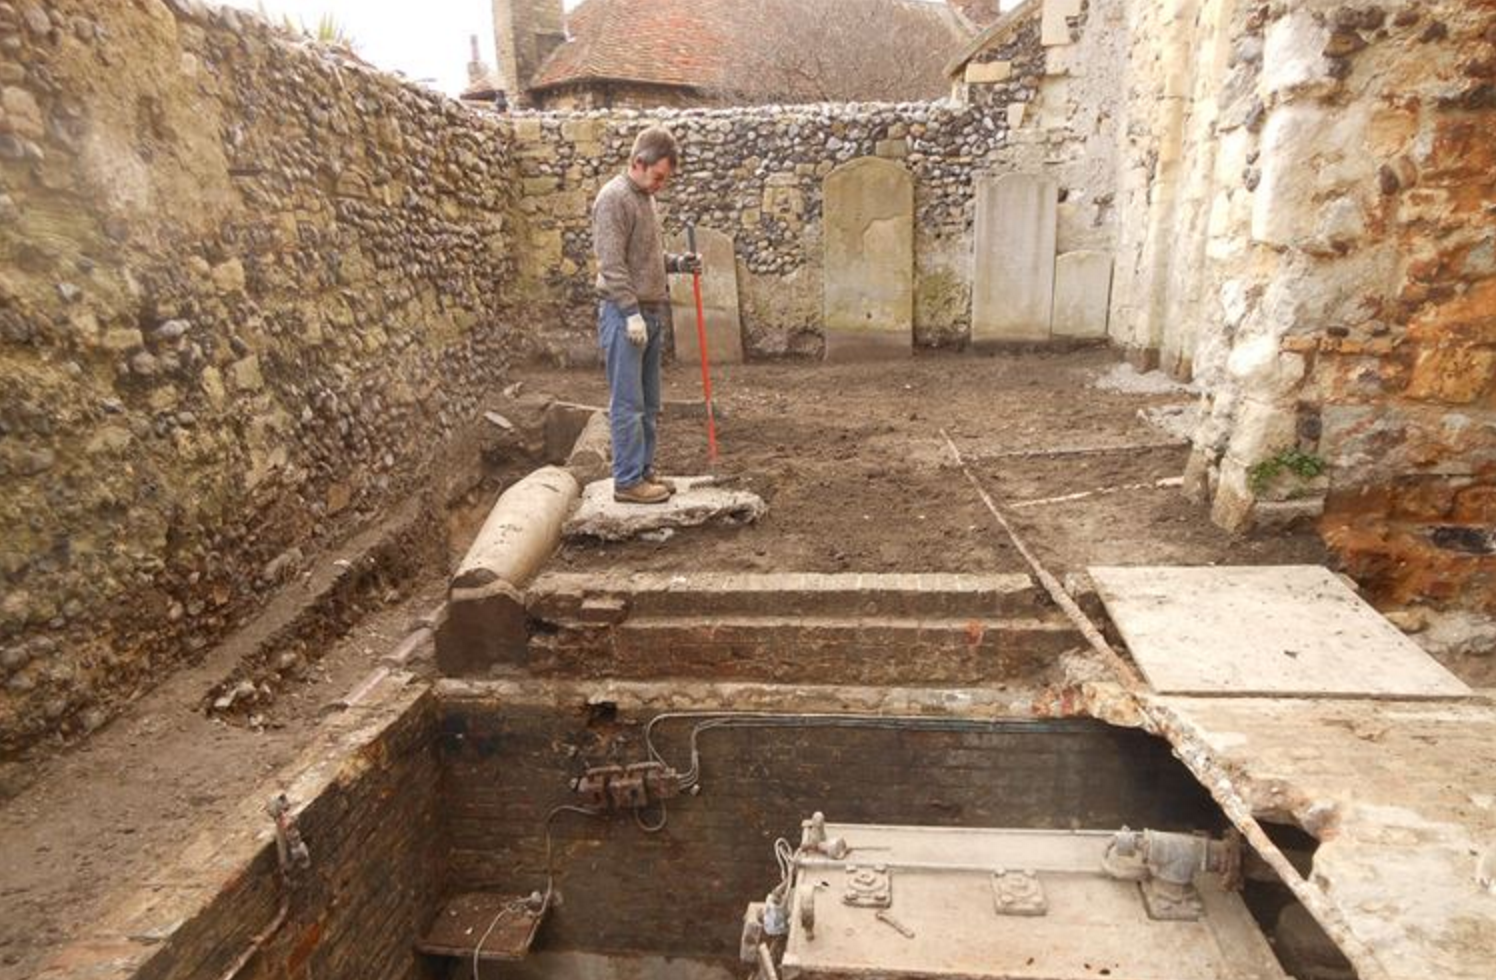 Volunteer digger Gareth inspects the 20th century heating plant which has been left exposed and will be removed allowing space to construct toilets